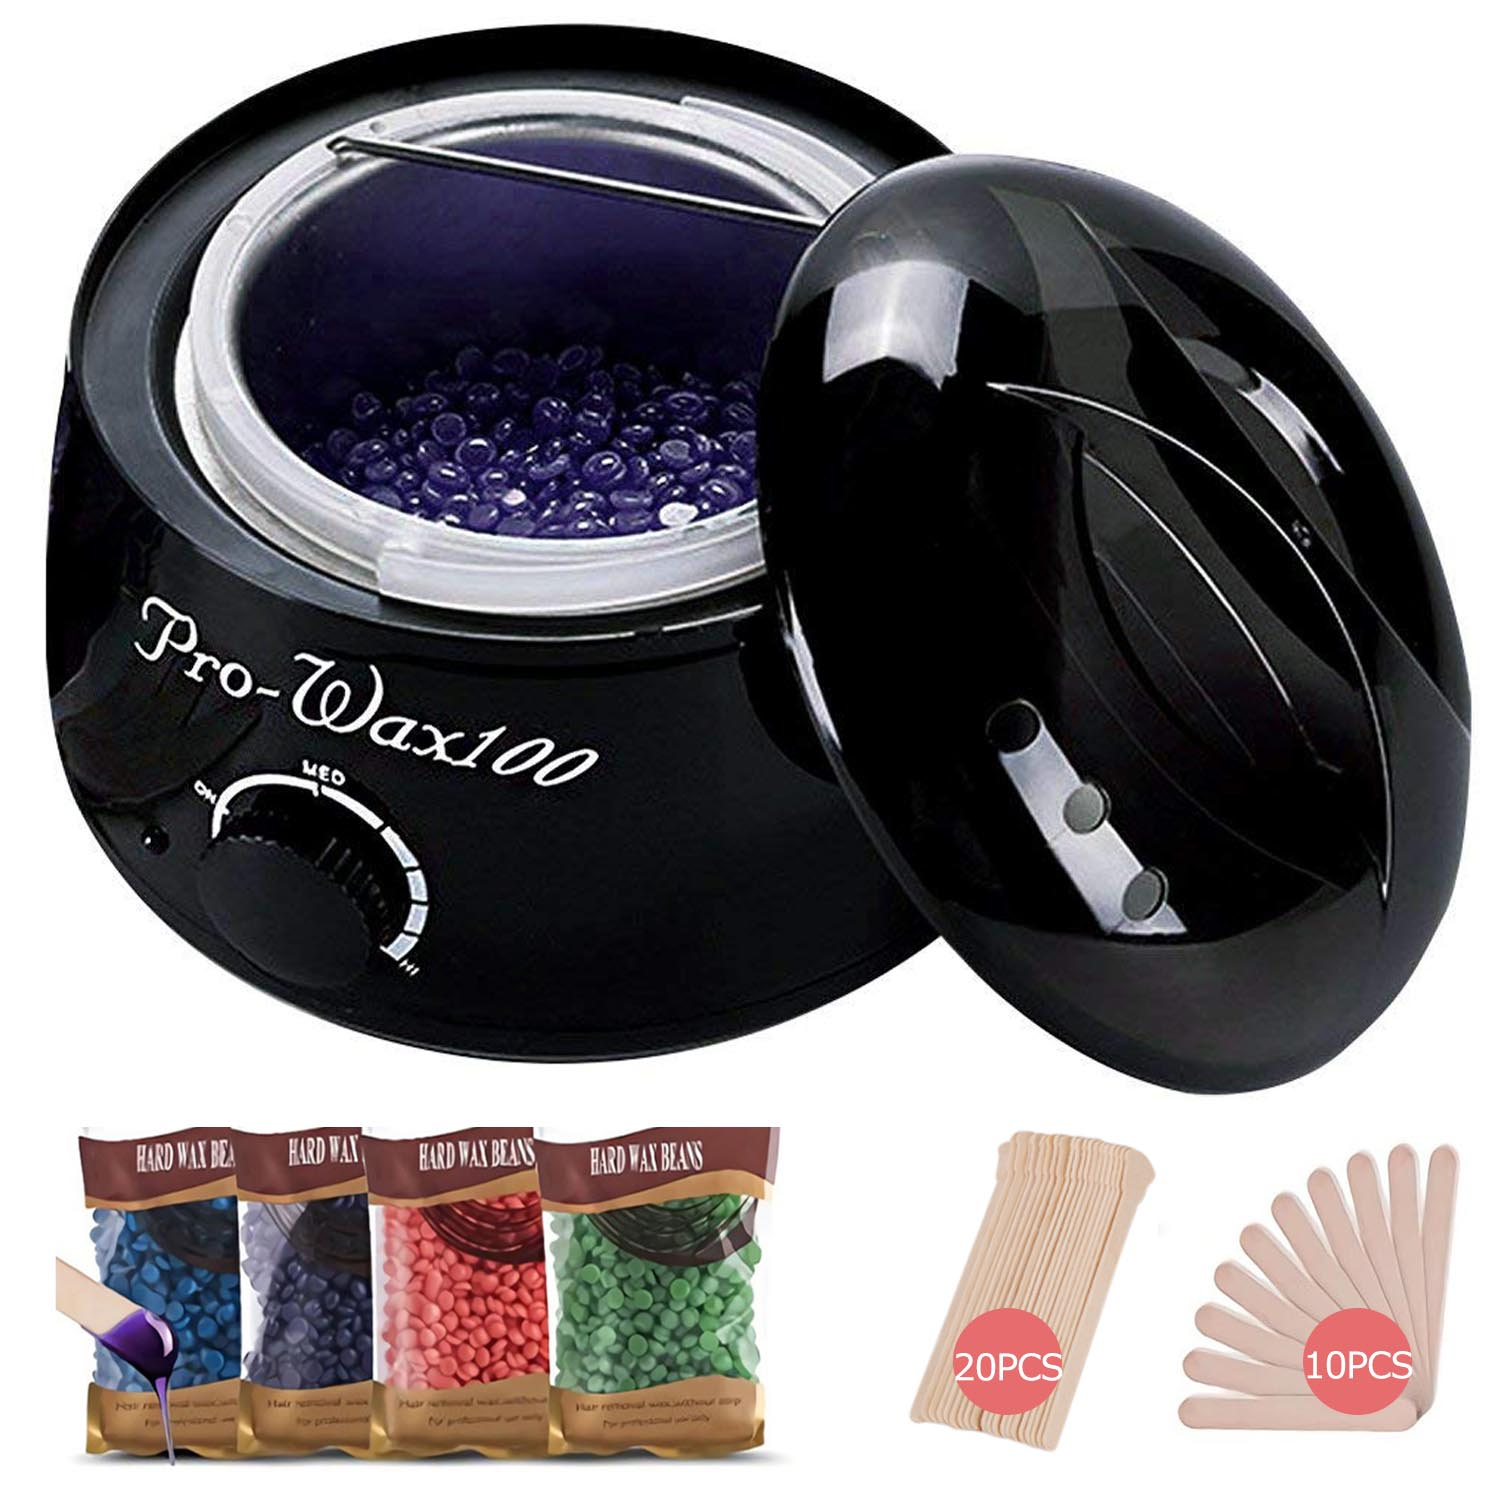 Wax Warmer Hair Removal Waxing Kit Wax Melts Warmers Heater Pot + 4 Flavors Hard Wax Beans + 30 Wax Applicator Sticks Home Depilatory Beauty Machine for Arm Leg Face Bikini